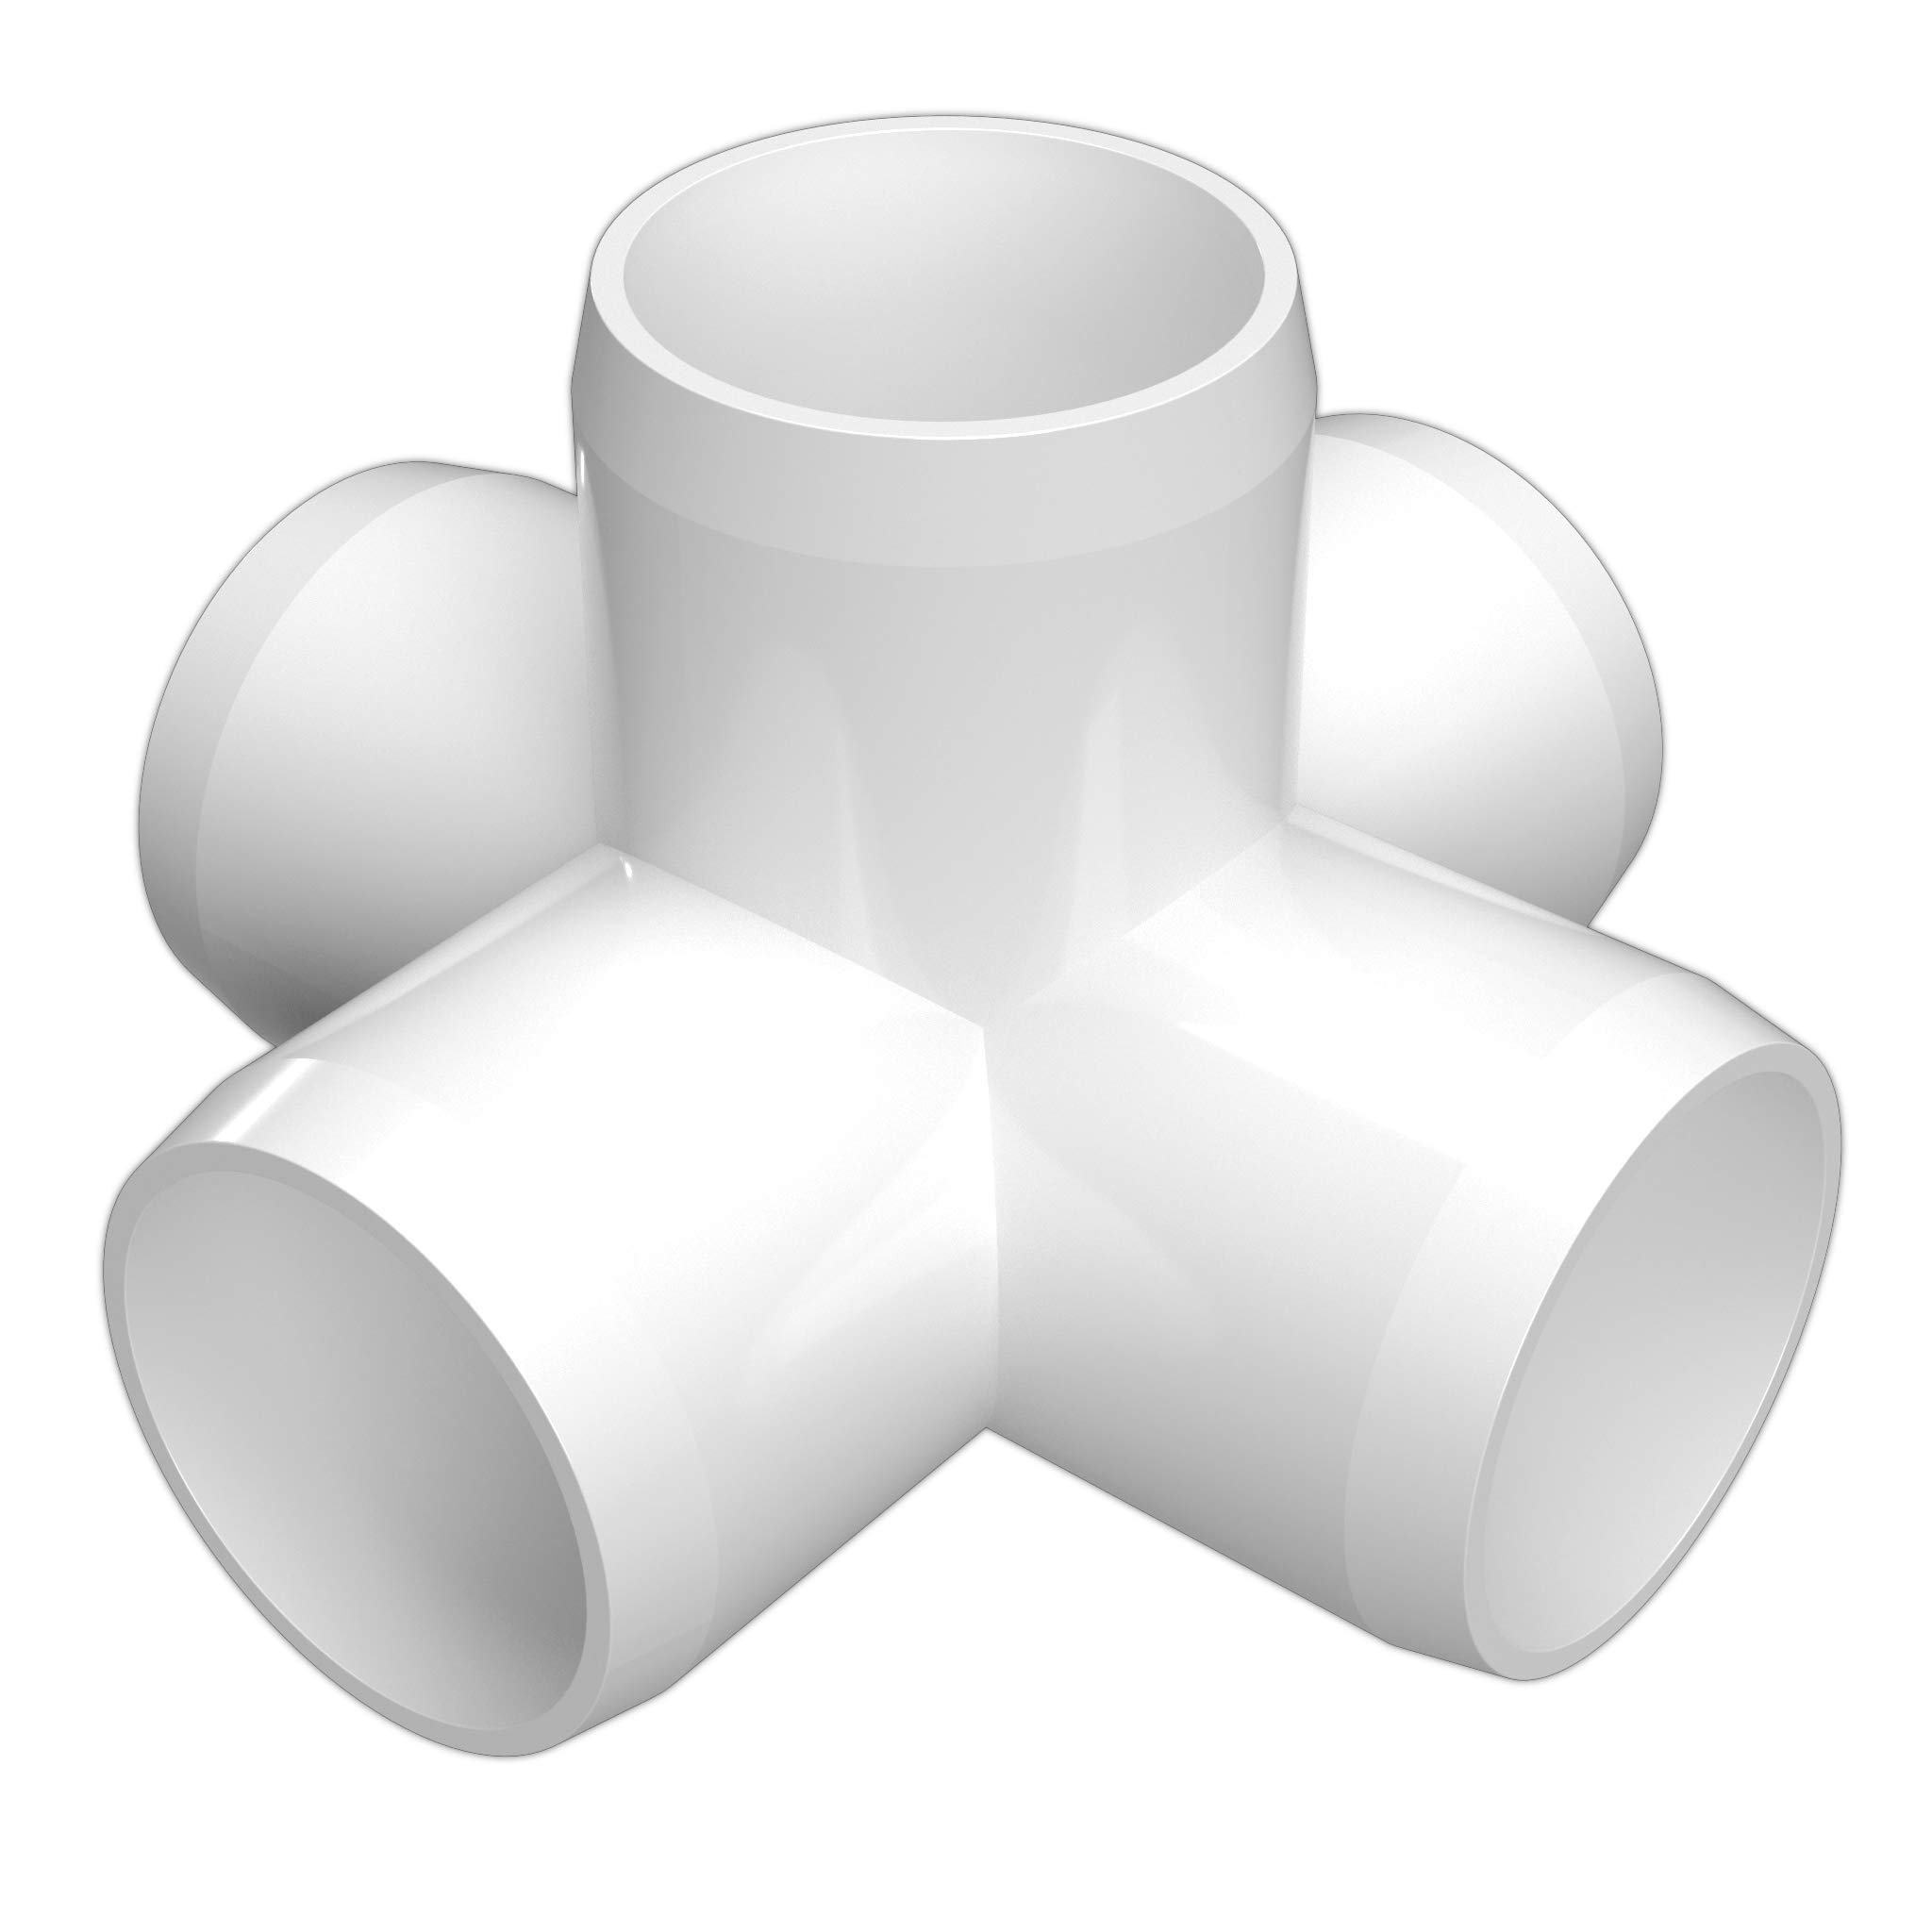 FORMUFIT F0345WC-WH-8 5-Way Cross PVC Fitting, Furniture Grade, 3/4'' Size, White (Pack of 8)